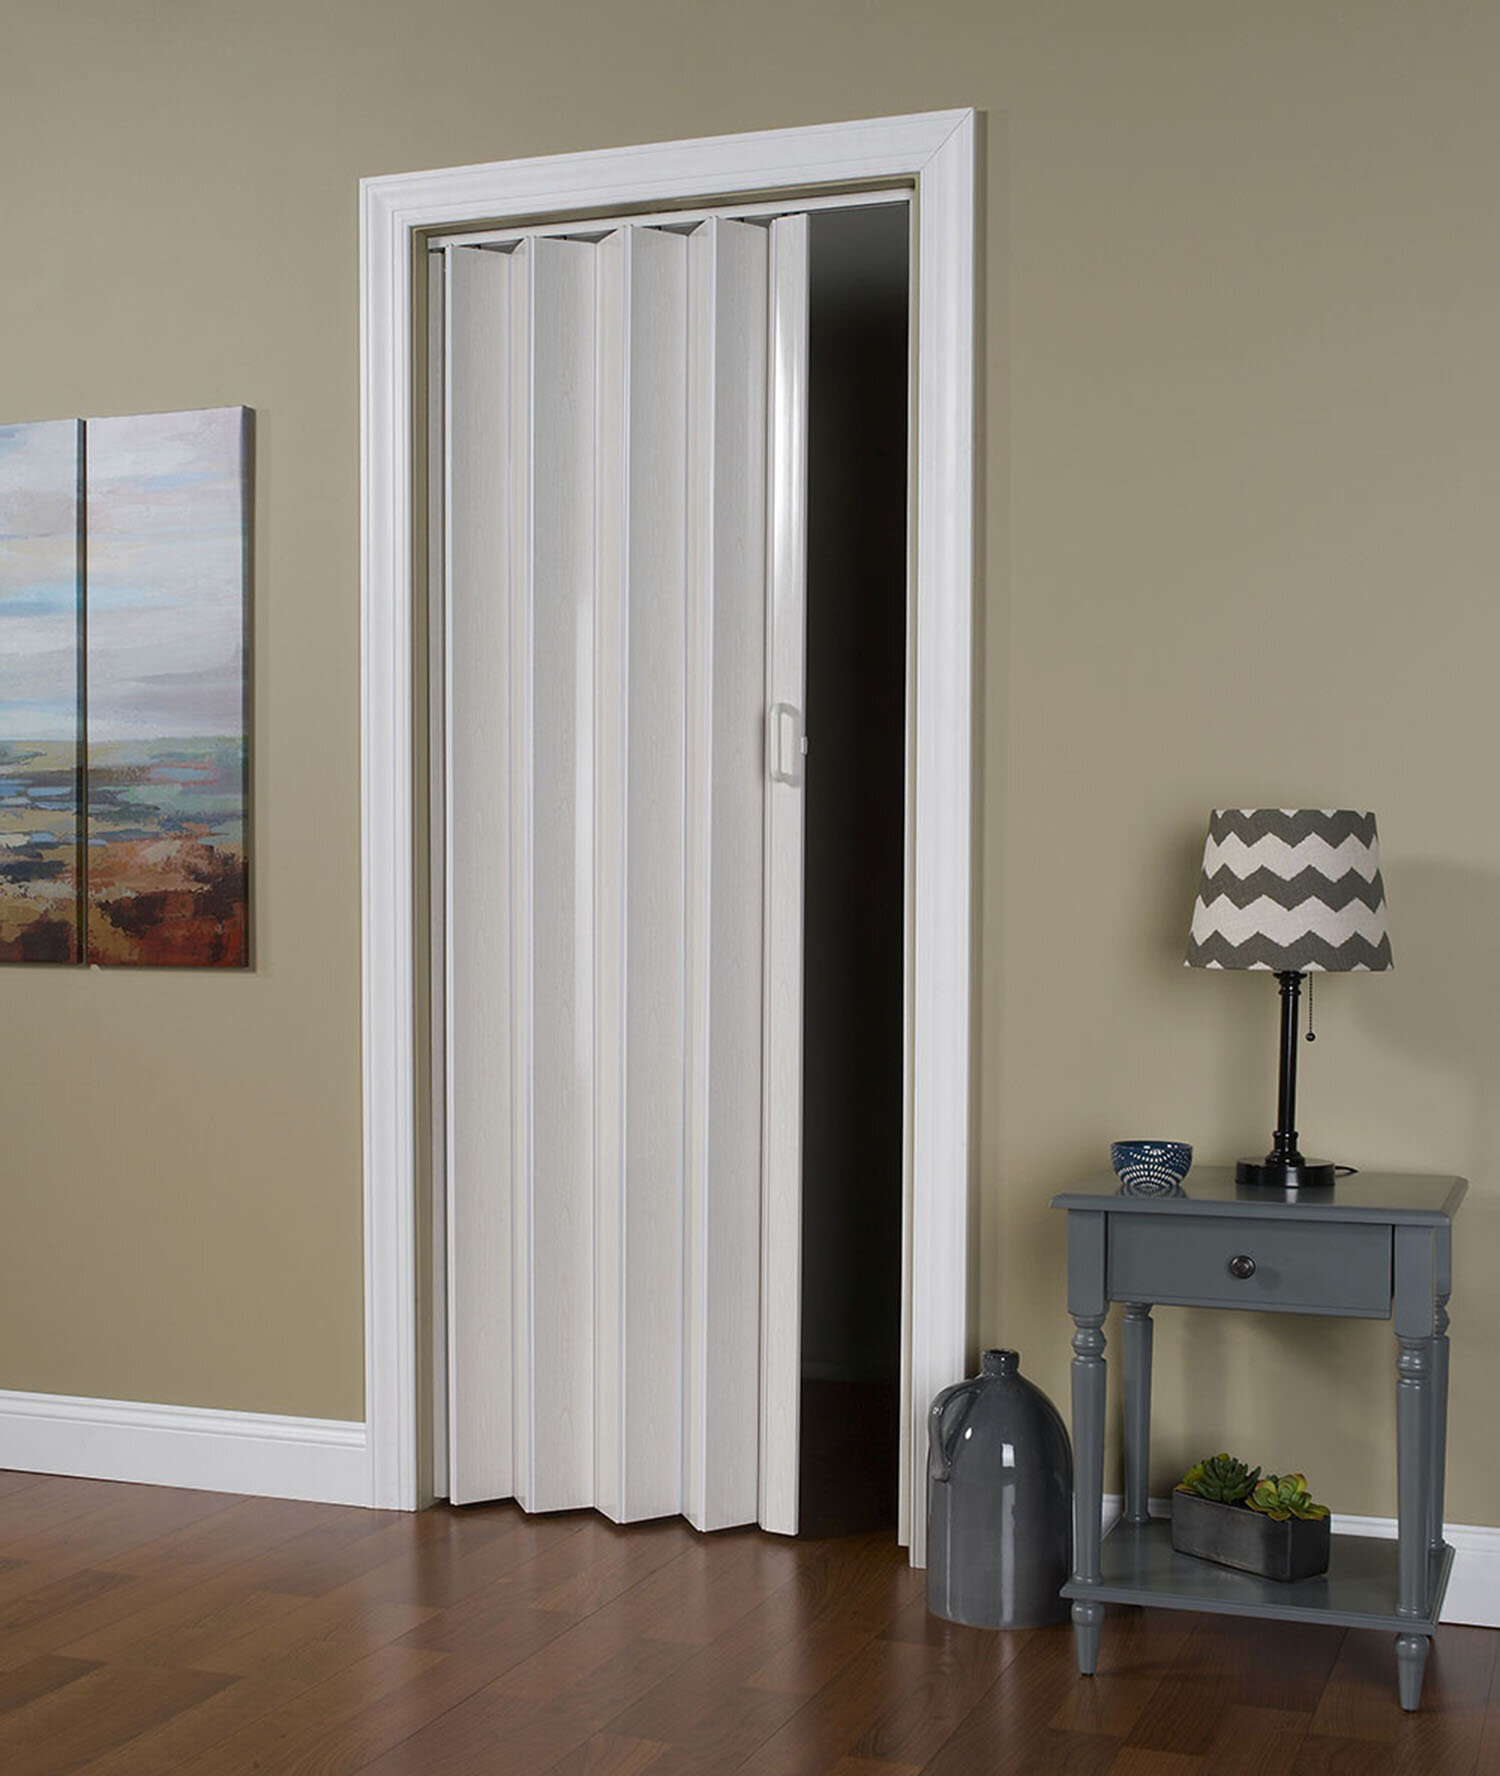 Ltl Accordion Doors Homestyle Vinyl Hollow Room Divider Accordion